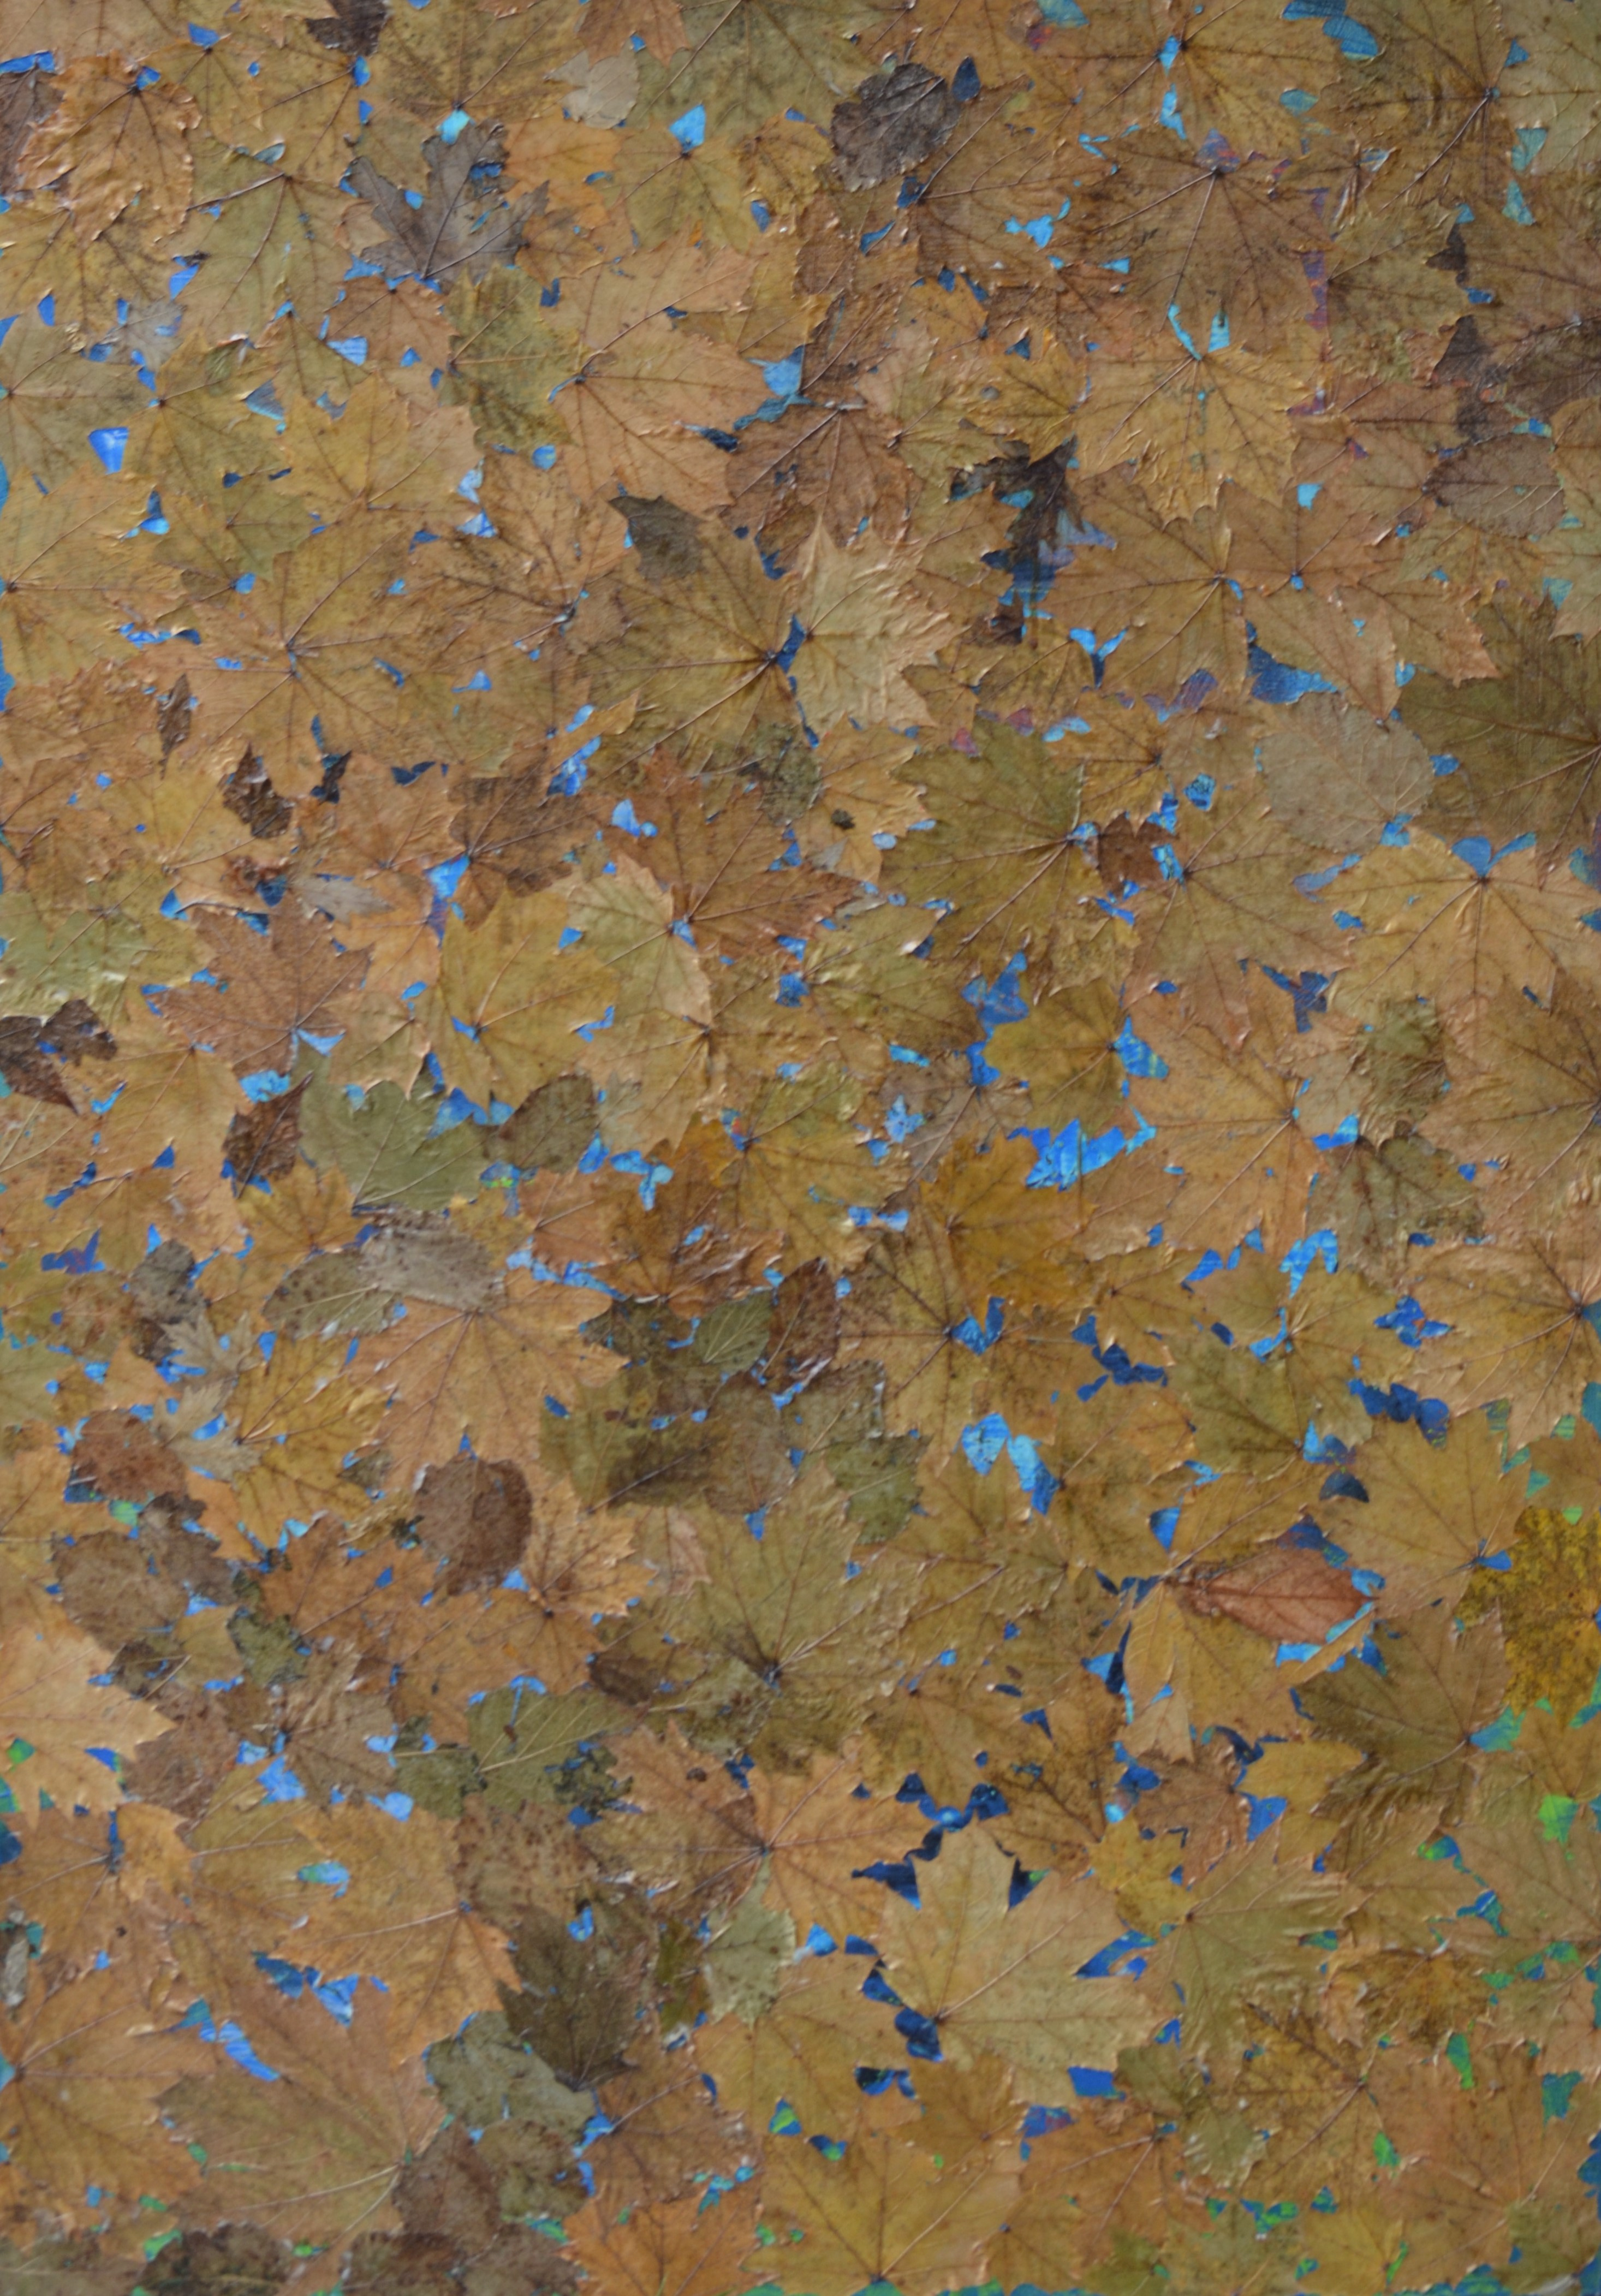 51.5x36 leaves and acrylic on canvas